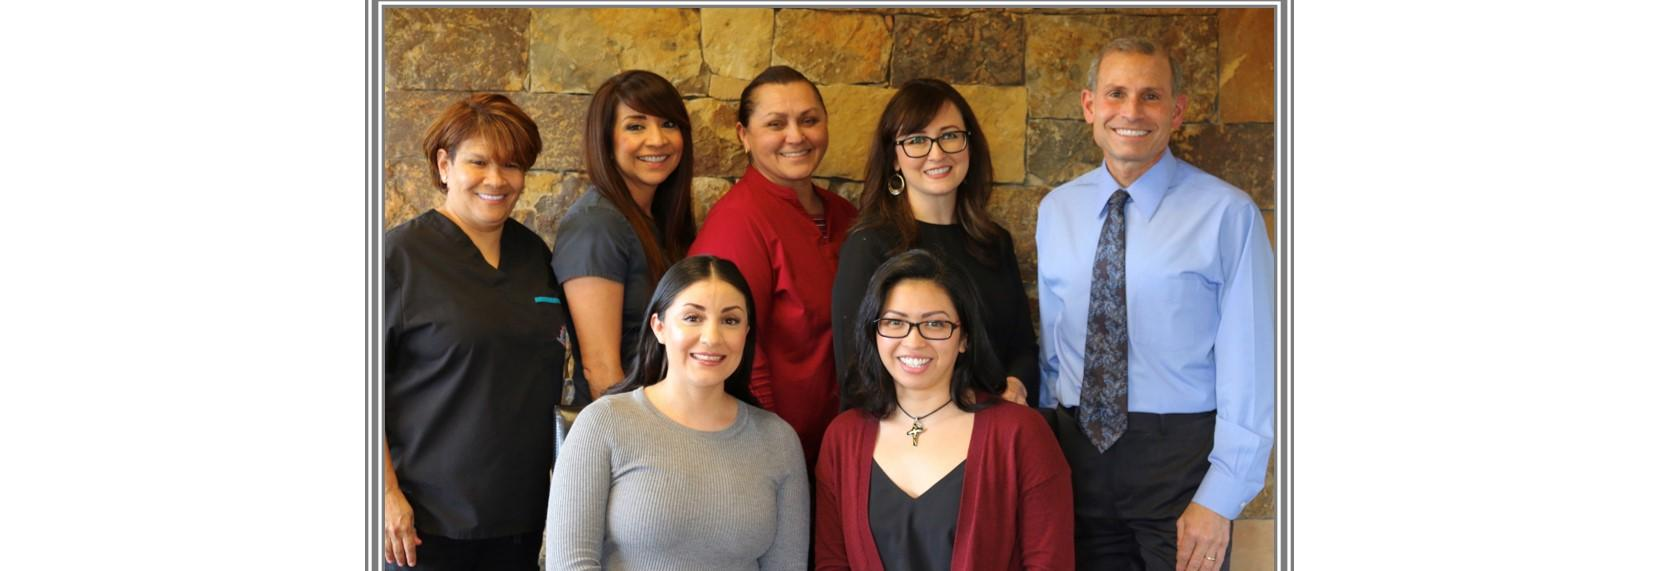 The dentist and staff of  Your Family Dentist in Santa Rosa, CA